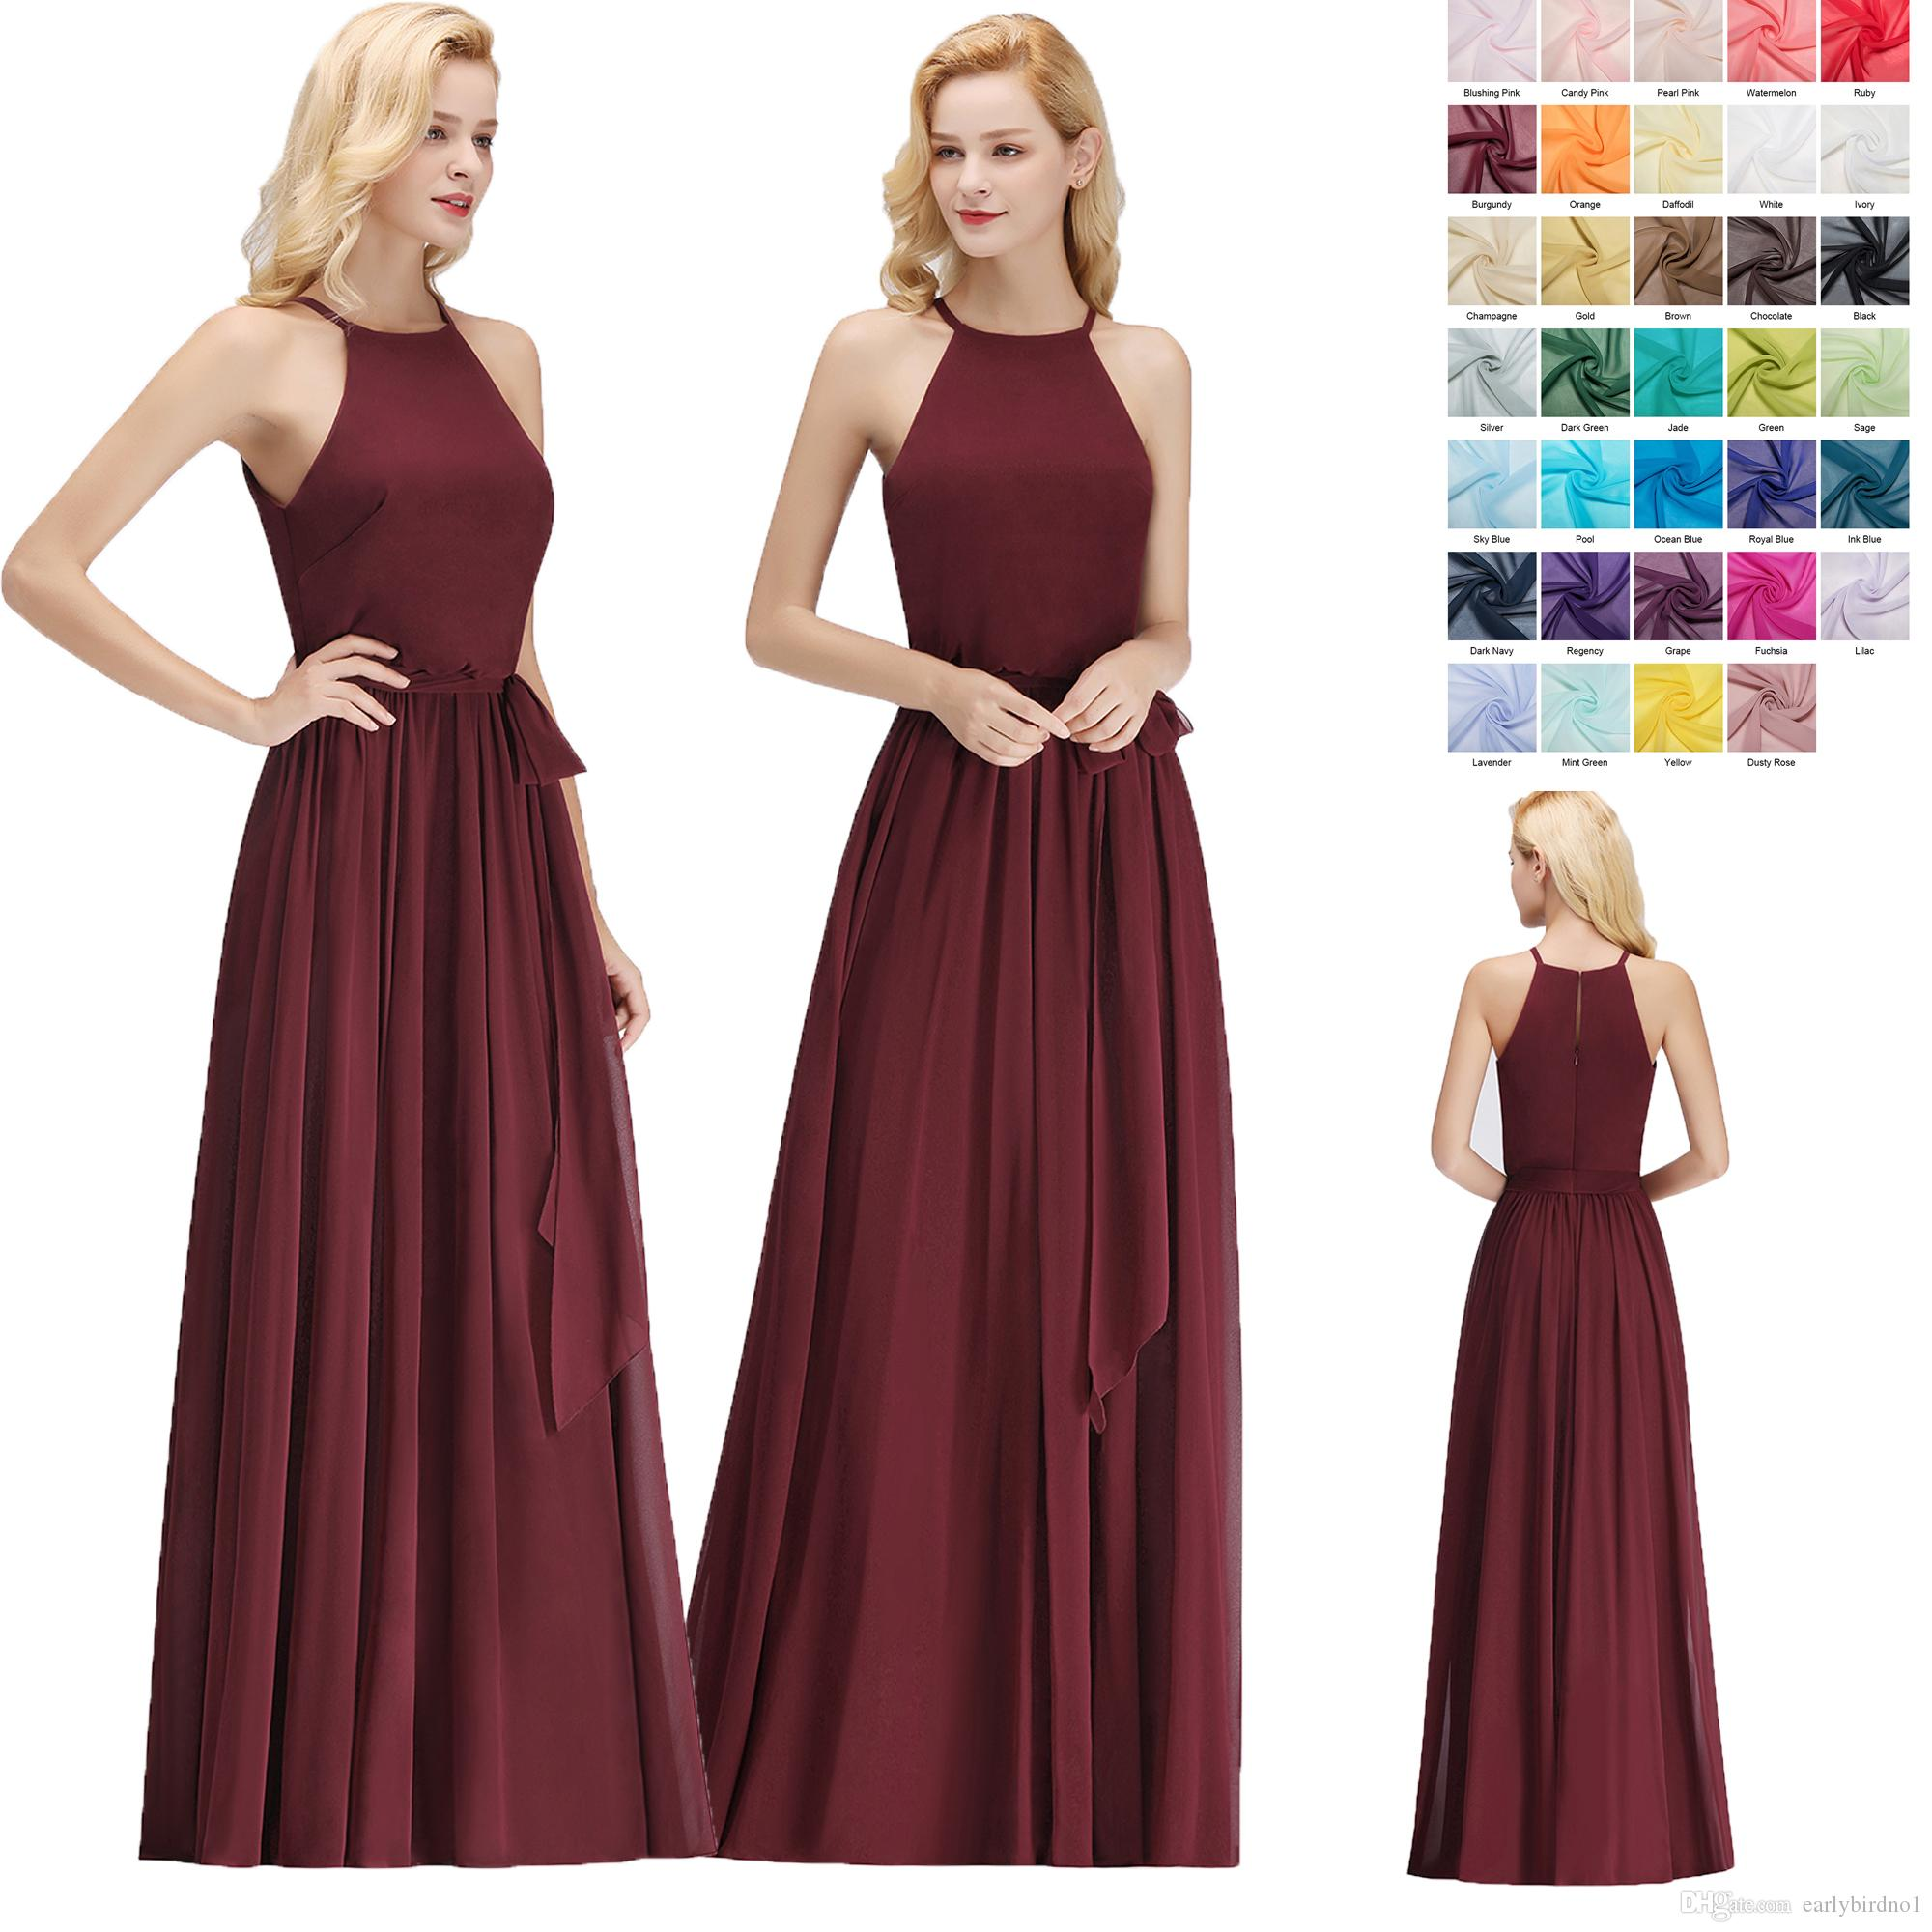 Custom Made Sexy Halter Simple Bridesmaids Dresses Burgundy Floor Length Chiffon with Sash Brautjungfer Kleider Maid of Honor Gown BM0035